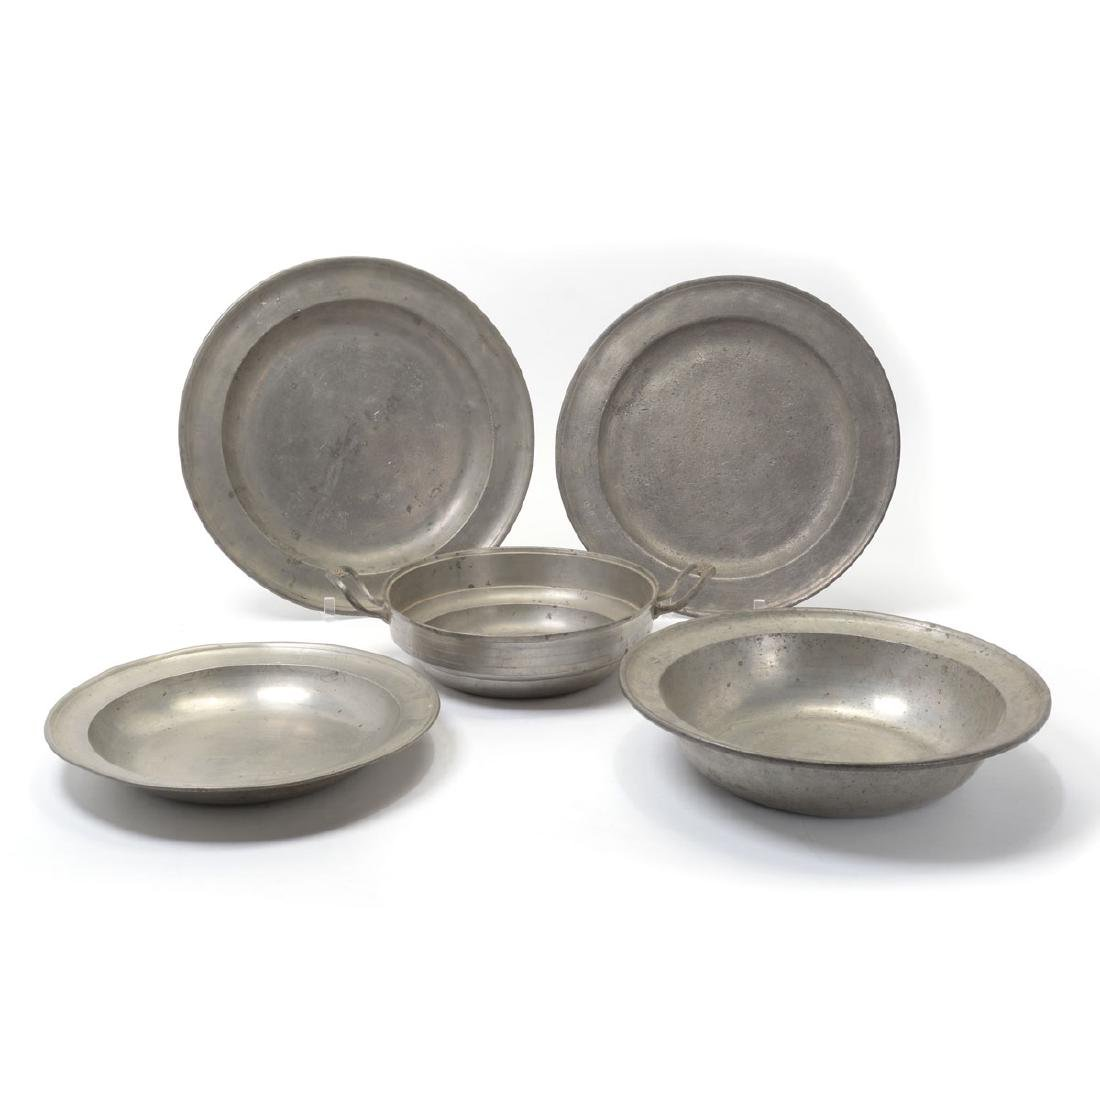 Group of Pewter Chargers and Bowls